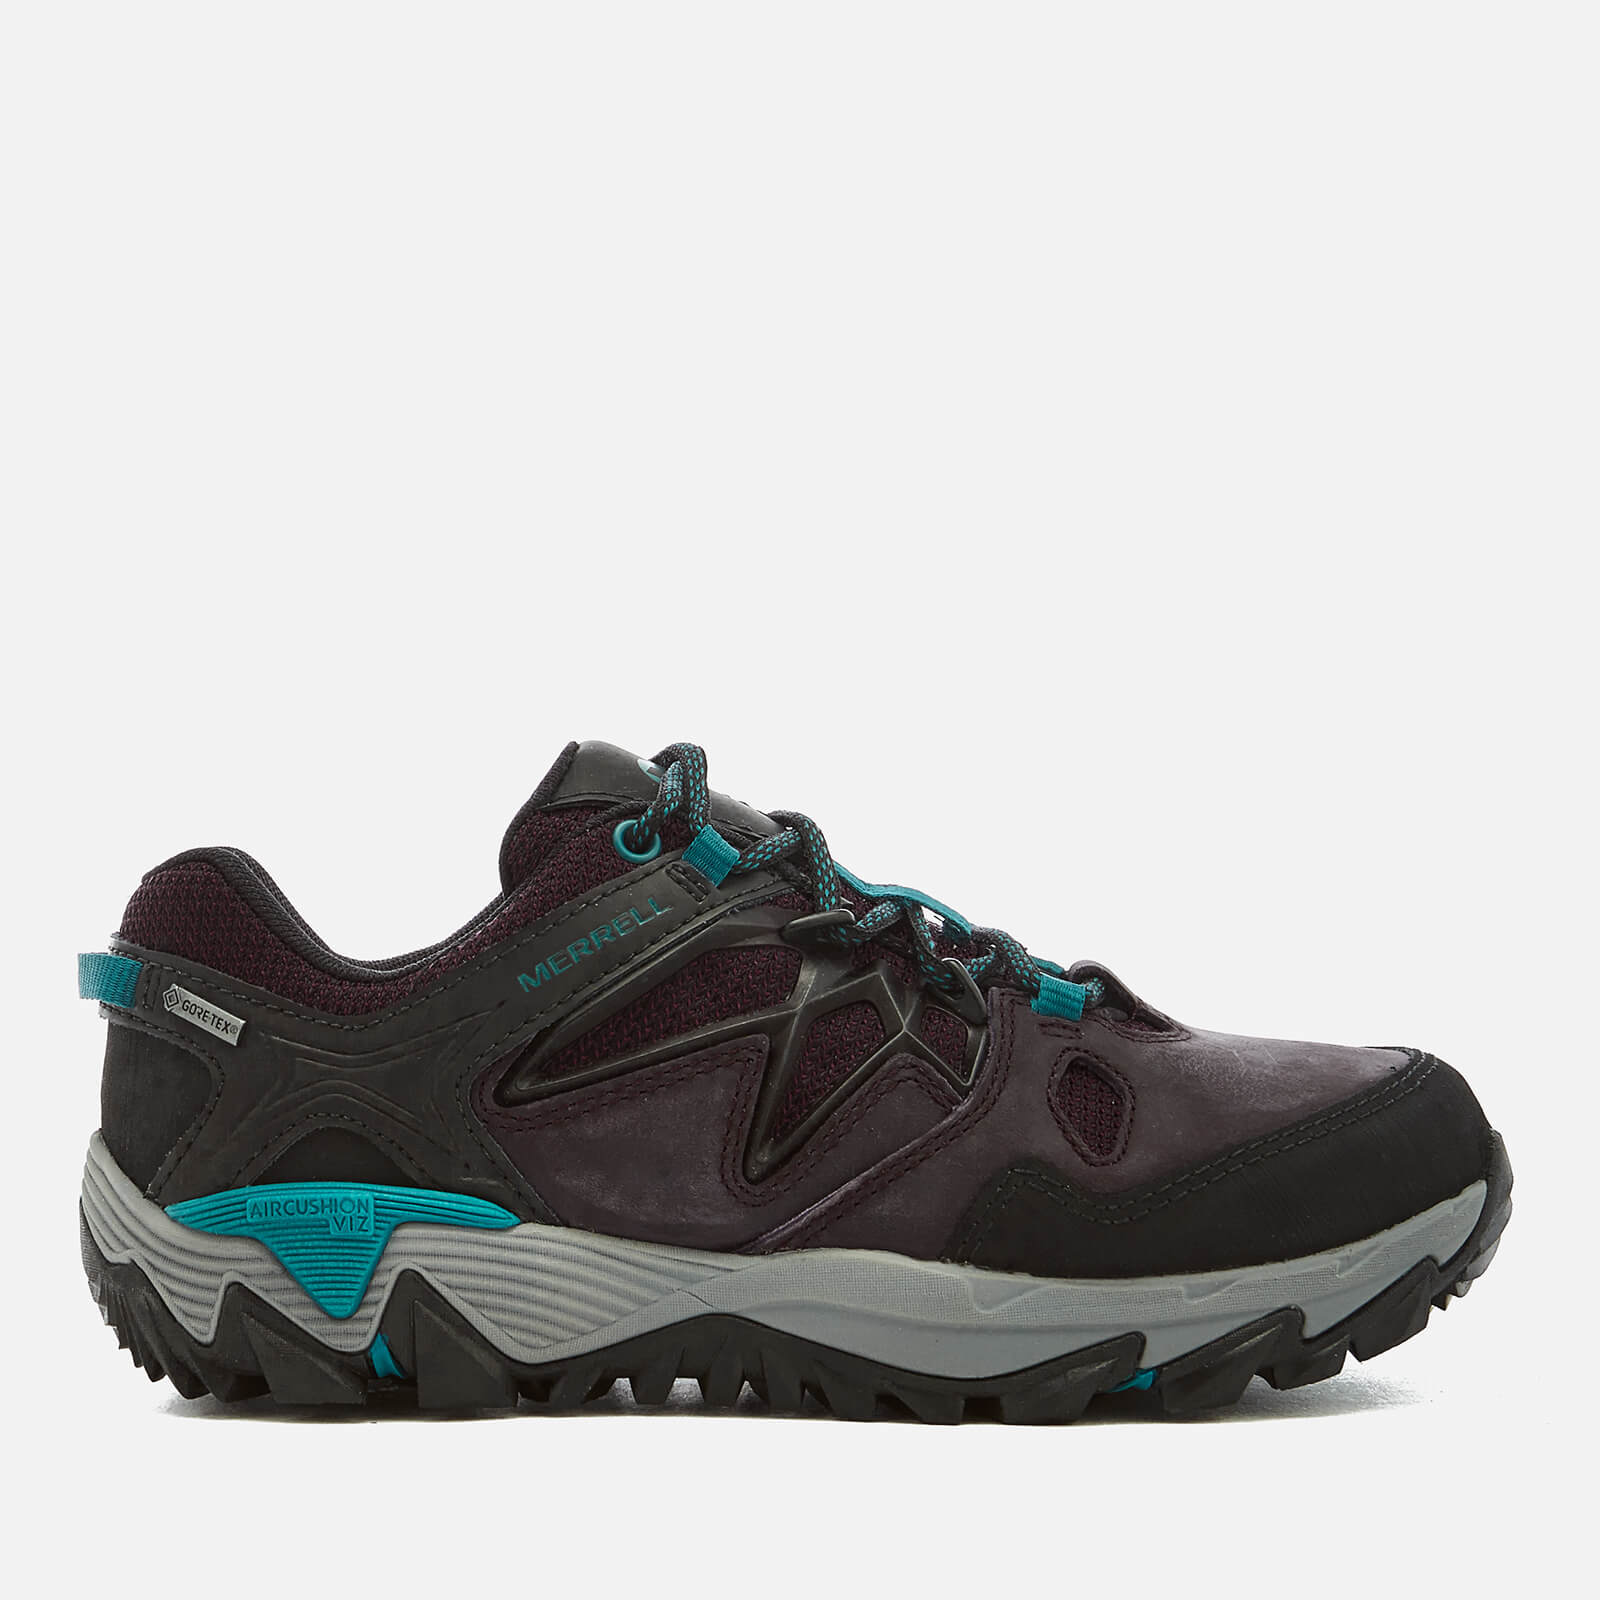 a1ebb531 Merrell Women's All Out Blaze 2 GORE-TEX Hiking Shoes - Berry